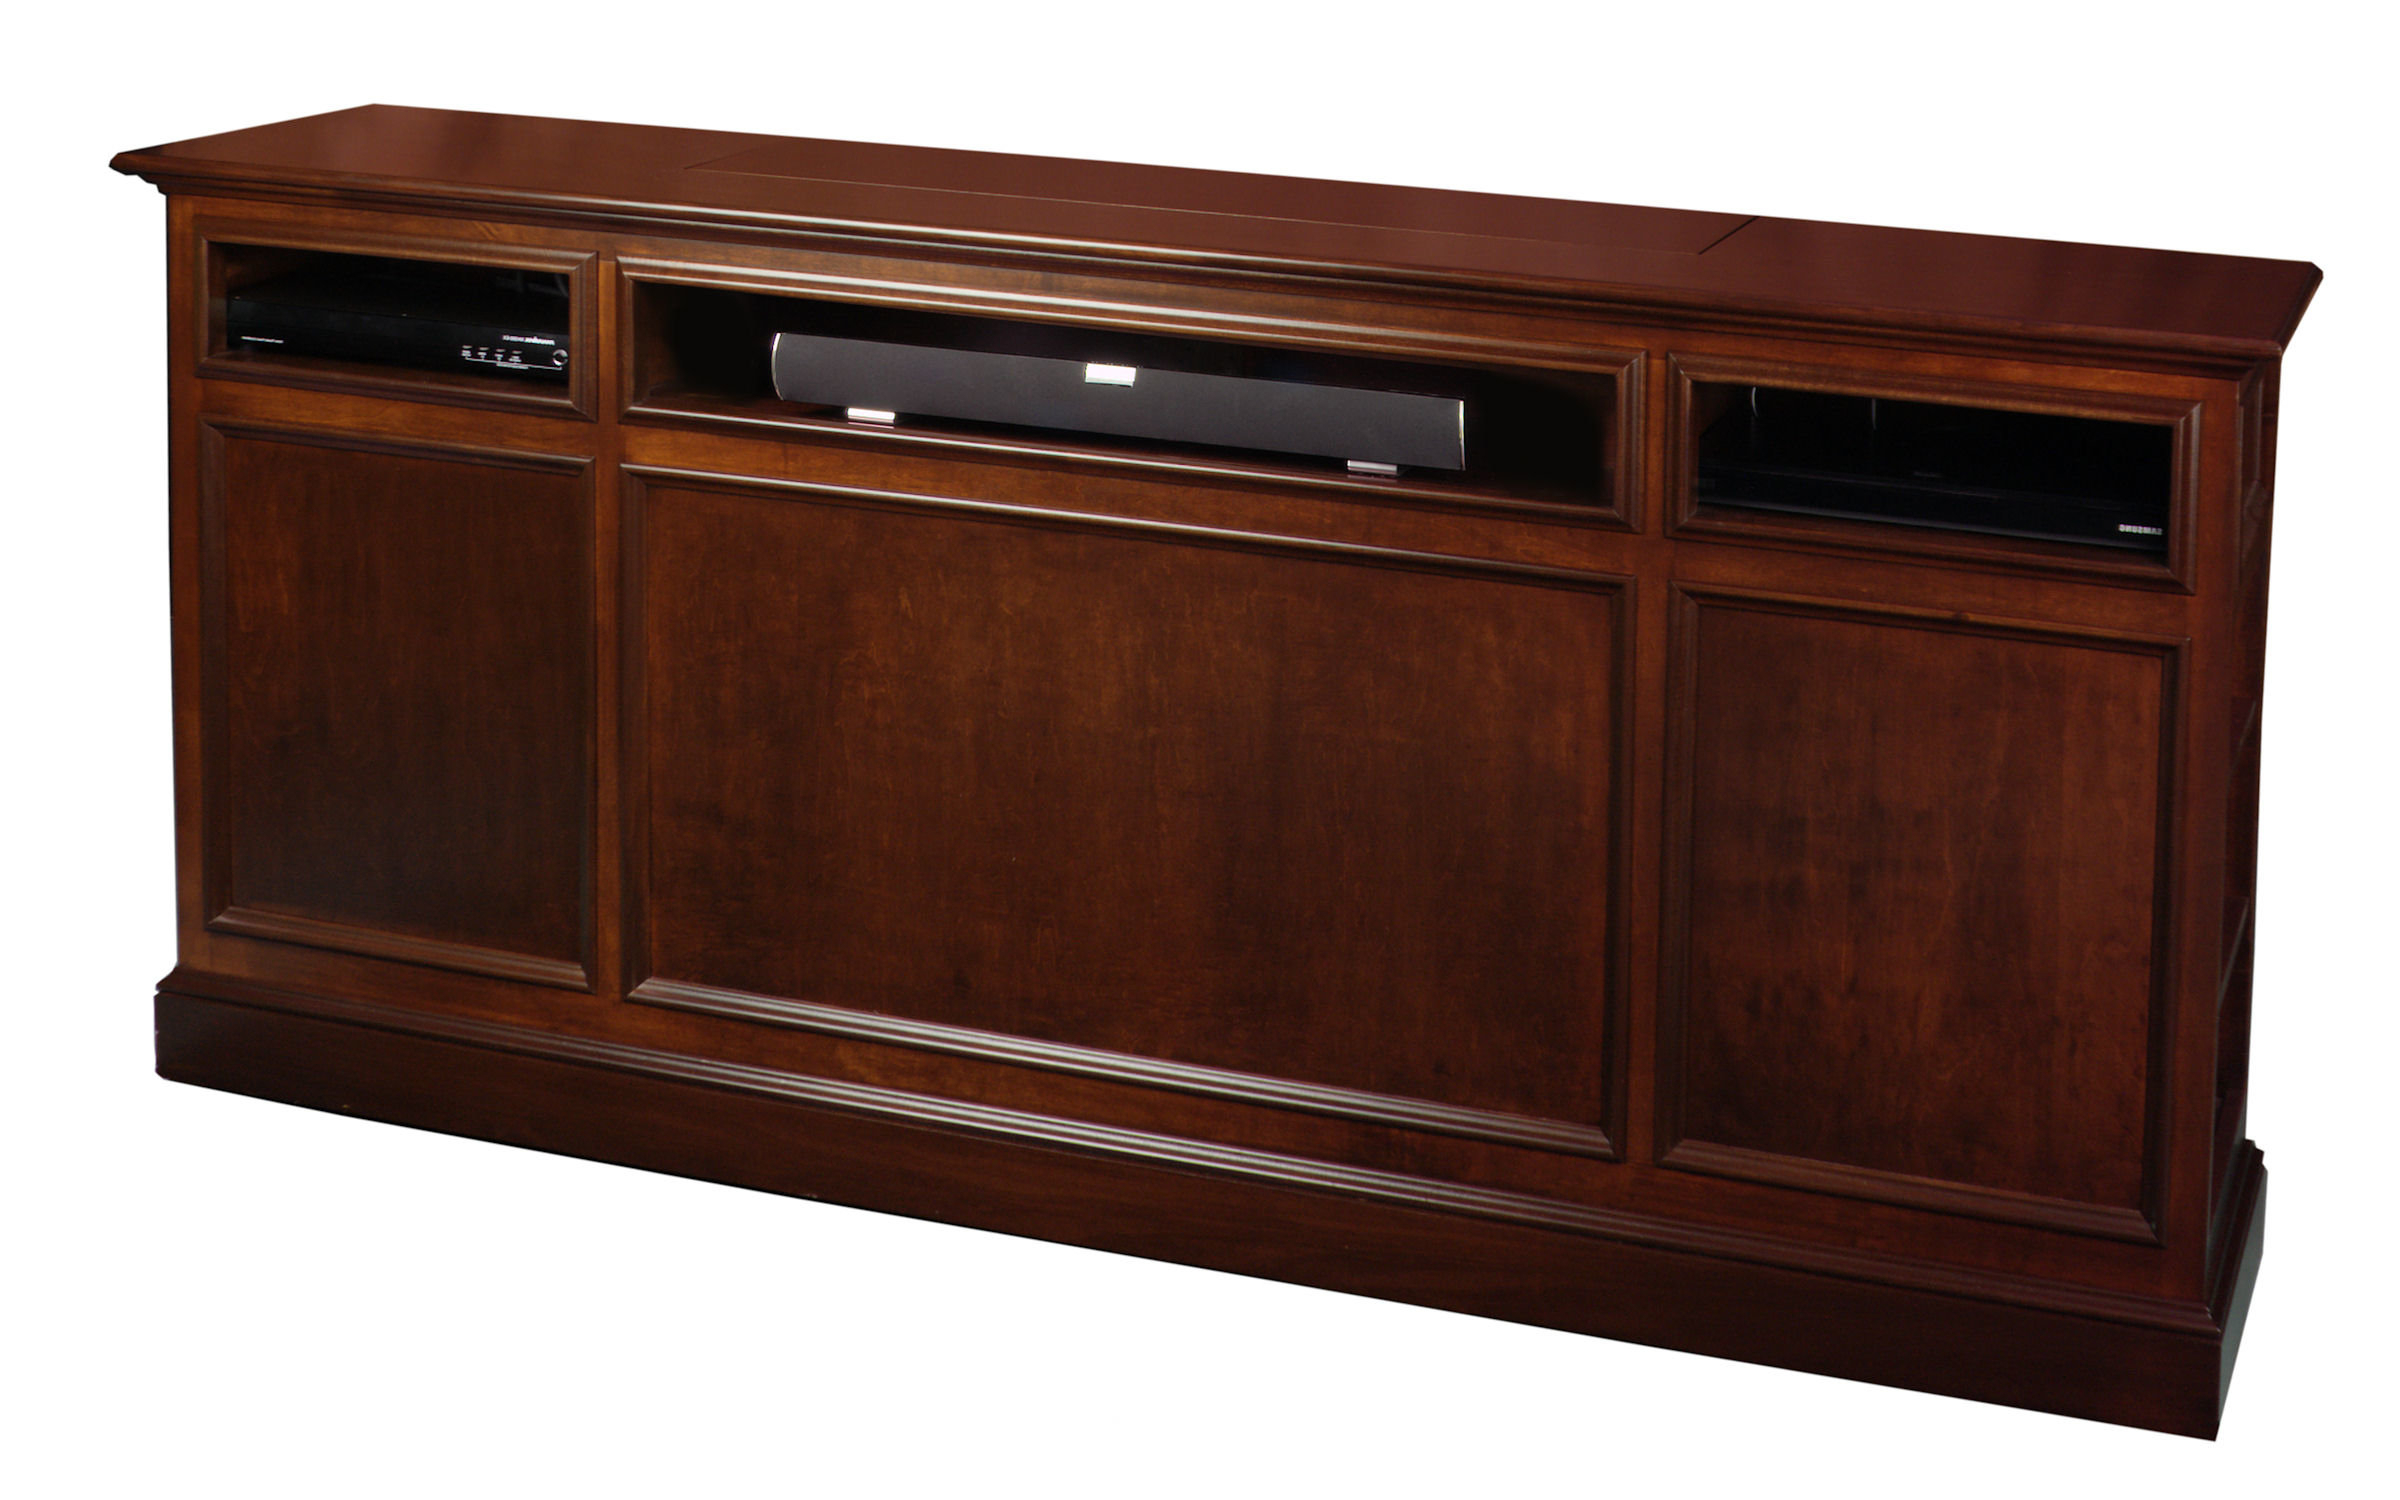 Most Popular Maple Tv Stands & Entertainment Centres You'll Love (View 9 of 20)